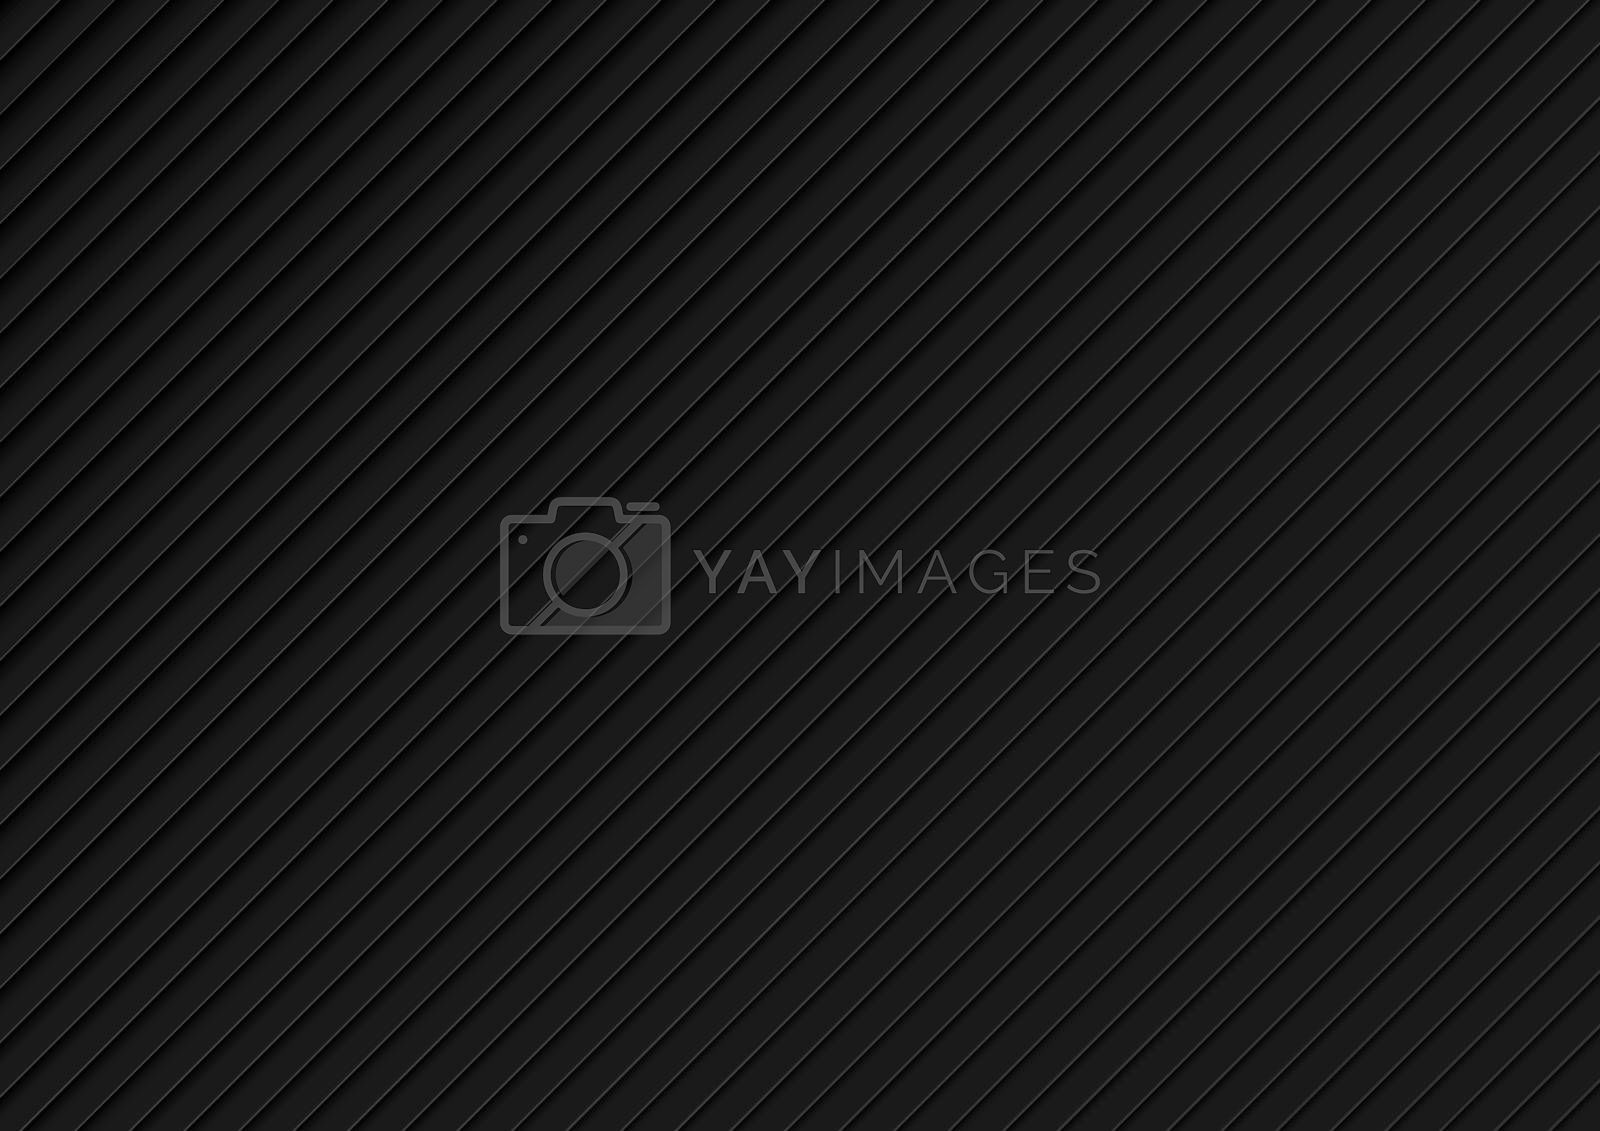 Black Background with Diagonal Layered Pattern - Texture with Three-dimensional Shadows and Gray Edges, Vector Illustration